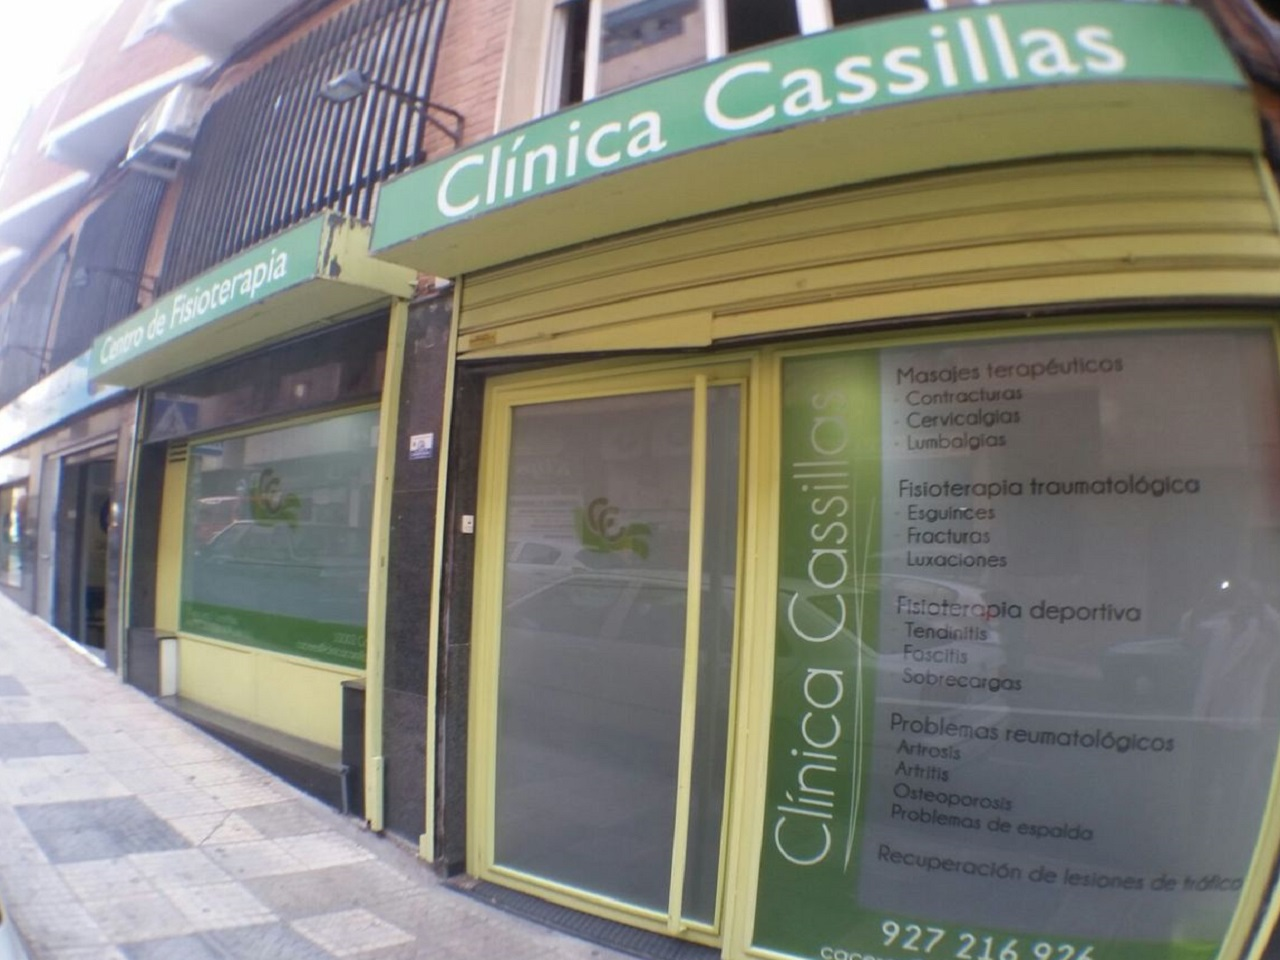 CLINICA CASSILLAS